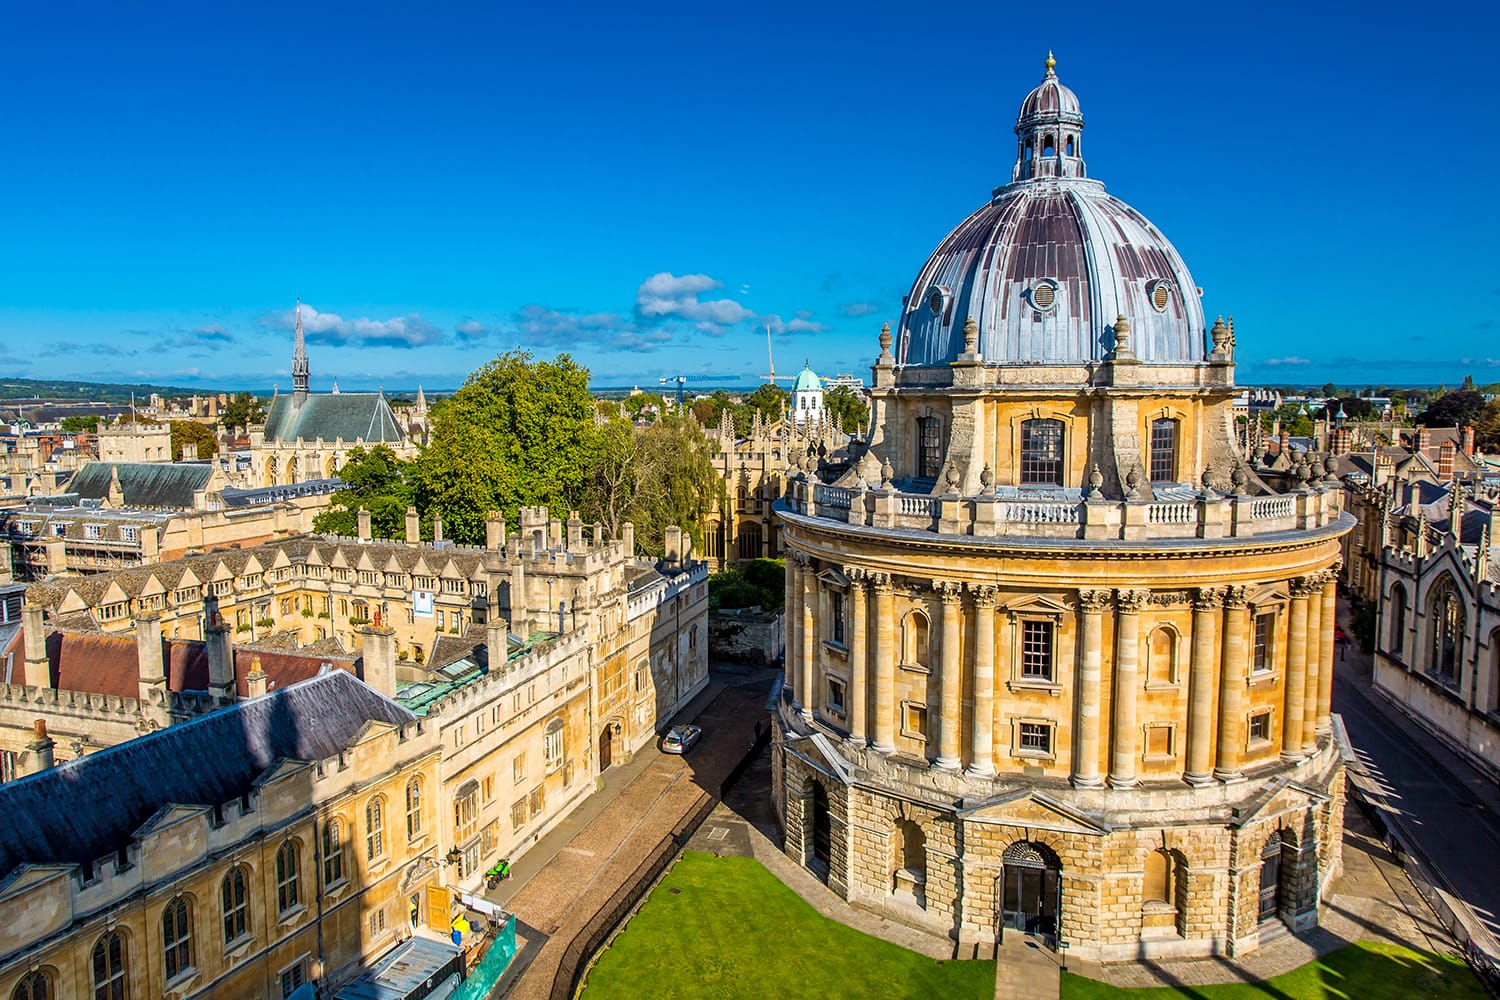 Radcliffe Camera, Bodleian Library, Oxford University, Oxford, England, United Kingdom